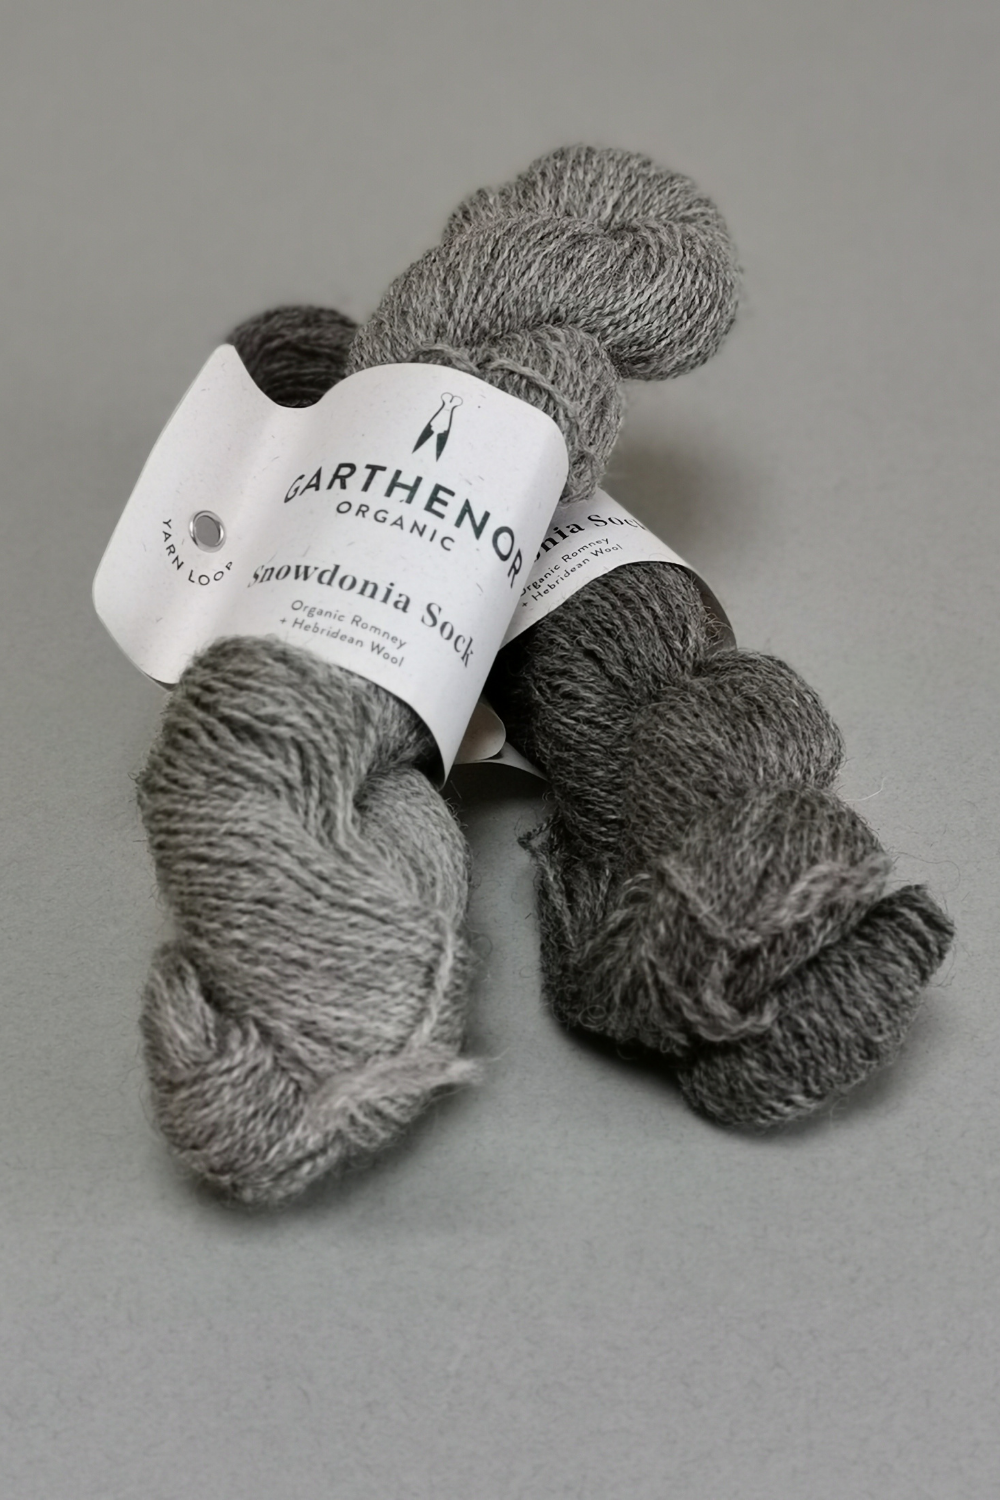 grey background with two skeins of a lustrous grey wool.  One is silver grey and the other is steel grey.